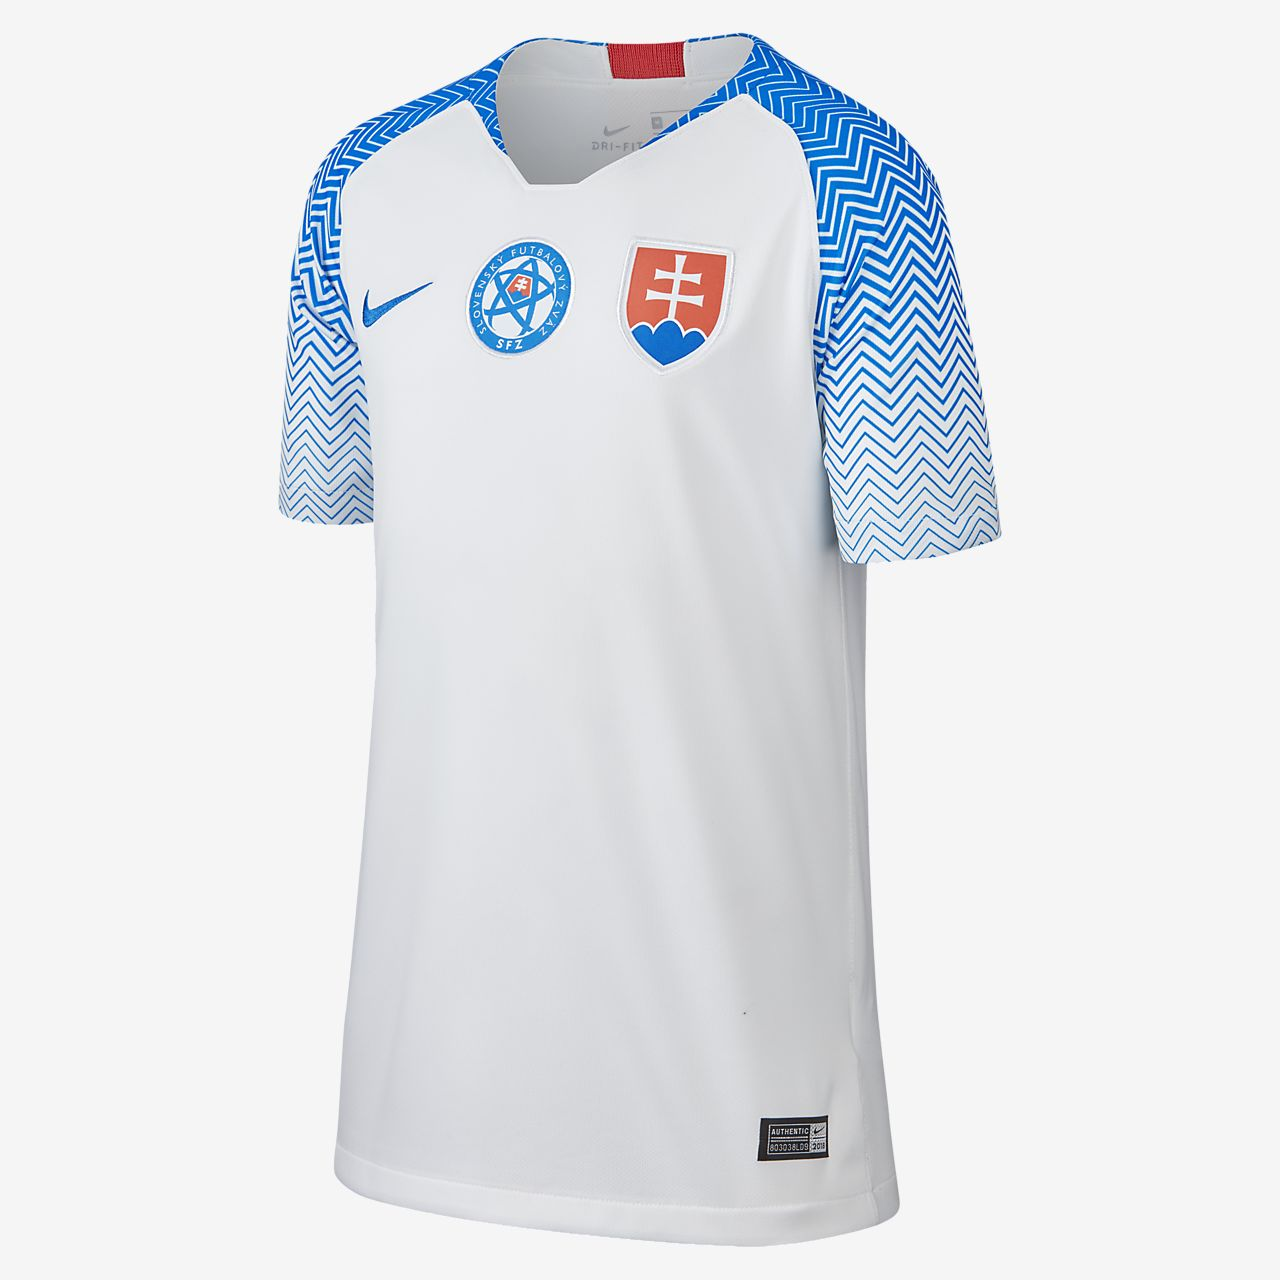 2018 Slovakia Stadium Home Older Kids' Football Shirt